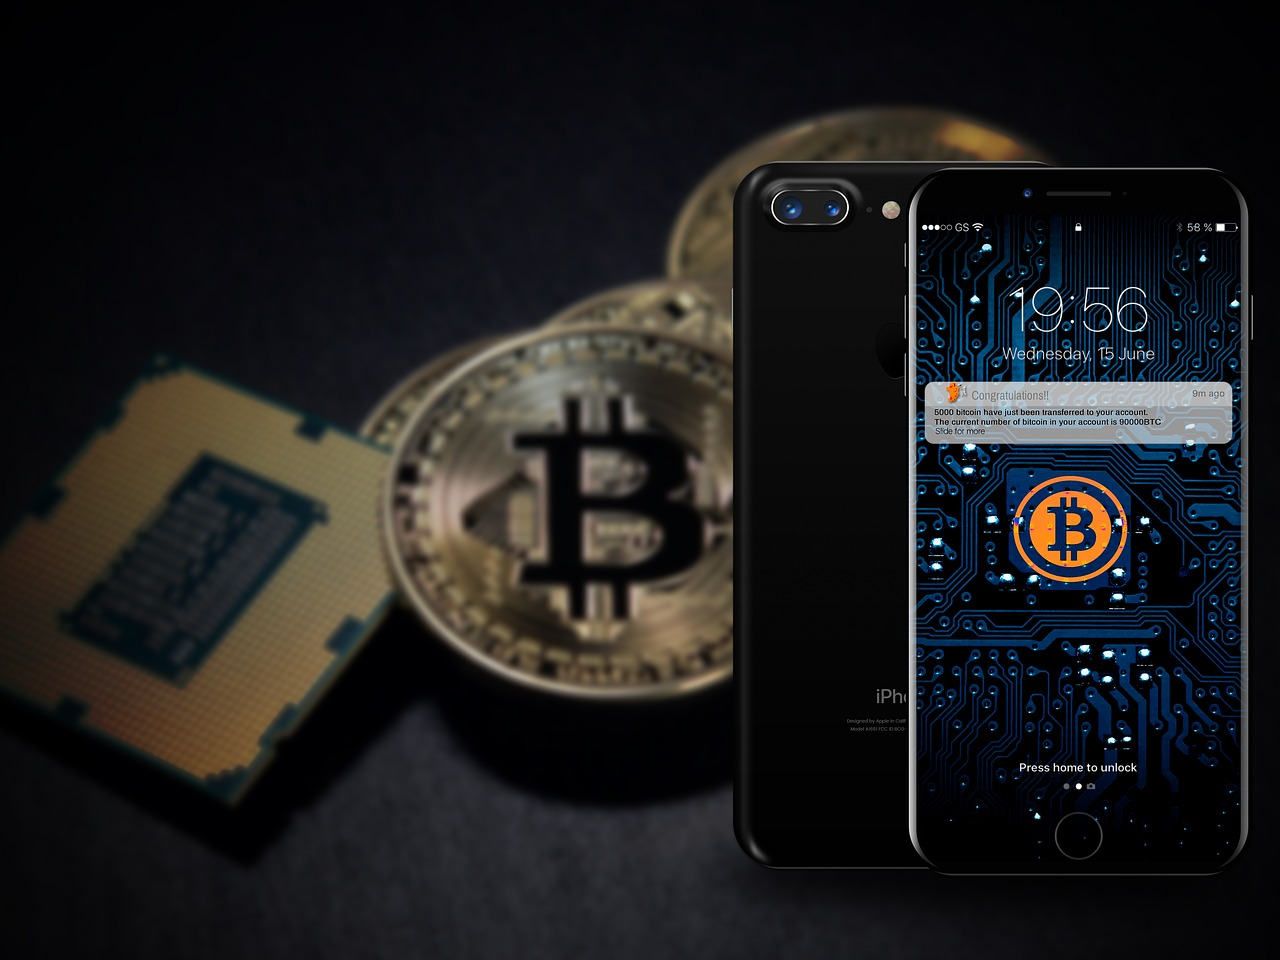 iphone with bitcoin at the back